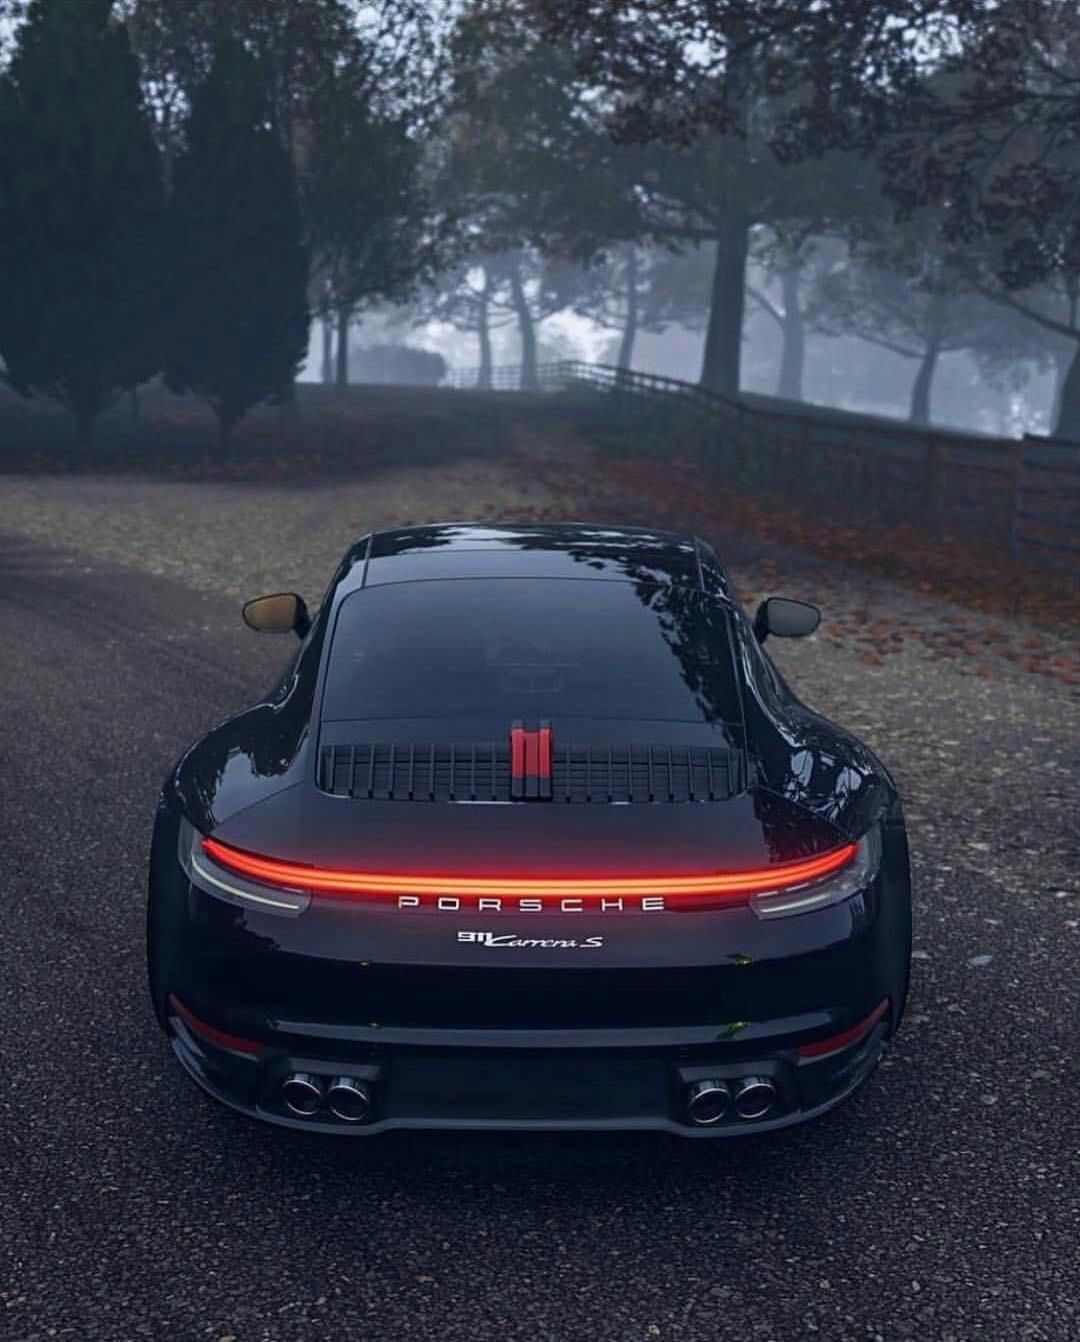 25 Inspirational Luxury Car Photo S Of March 2019 Tpoinspiration Luxury Car Photos Top Cars Porsche 911